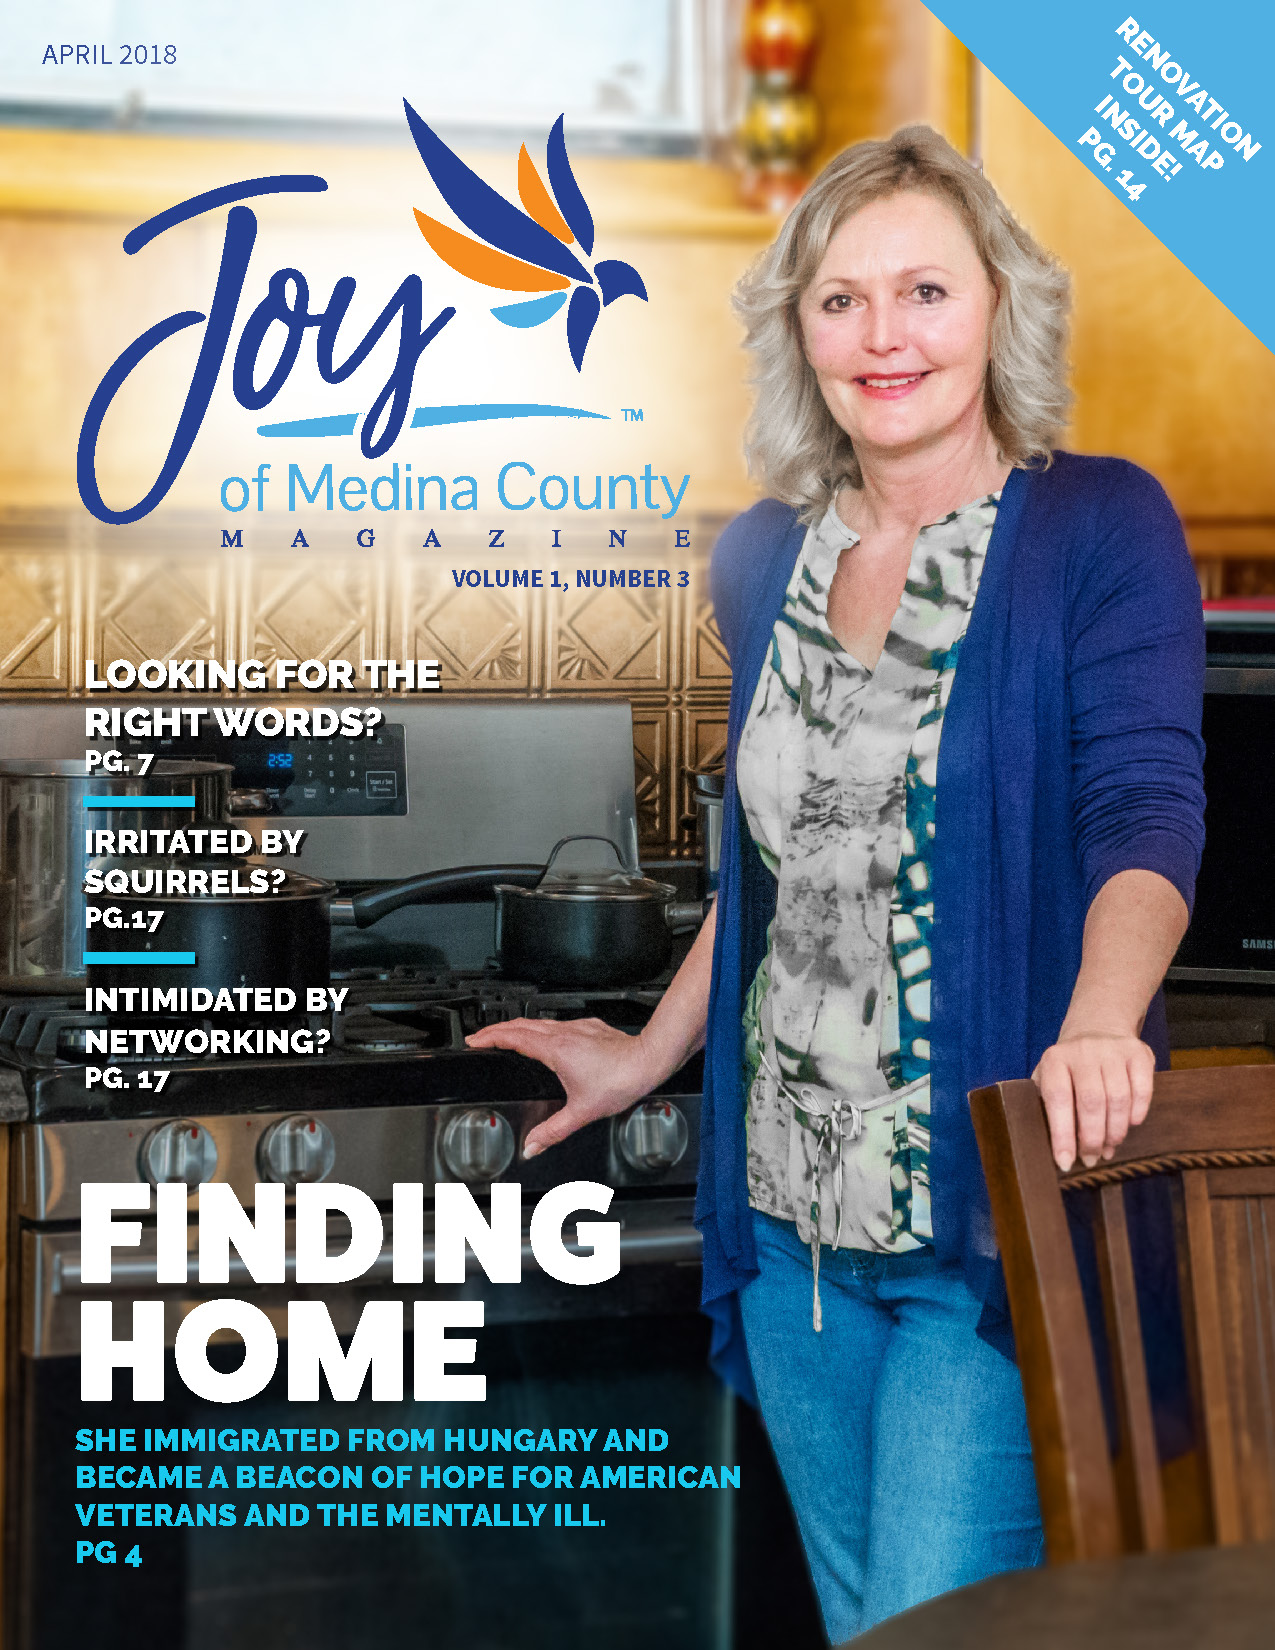 Joy of Medina County Magazine April 2018 issue.